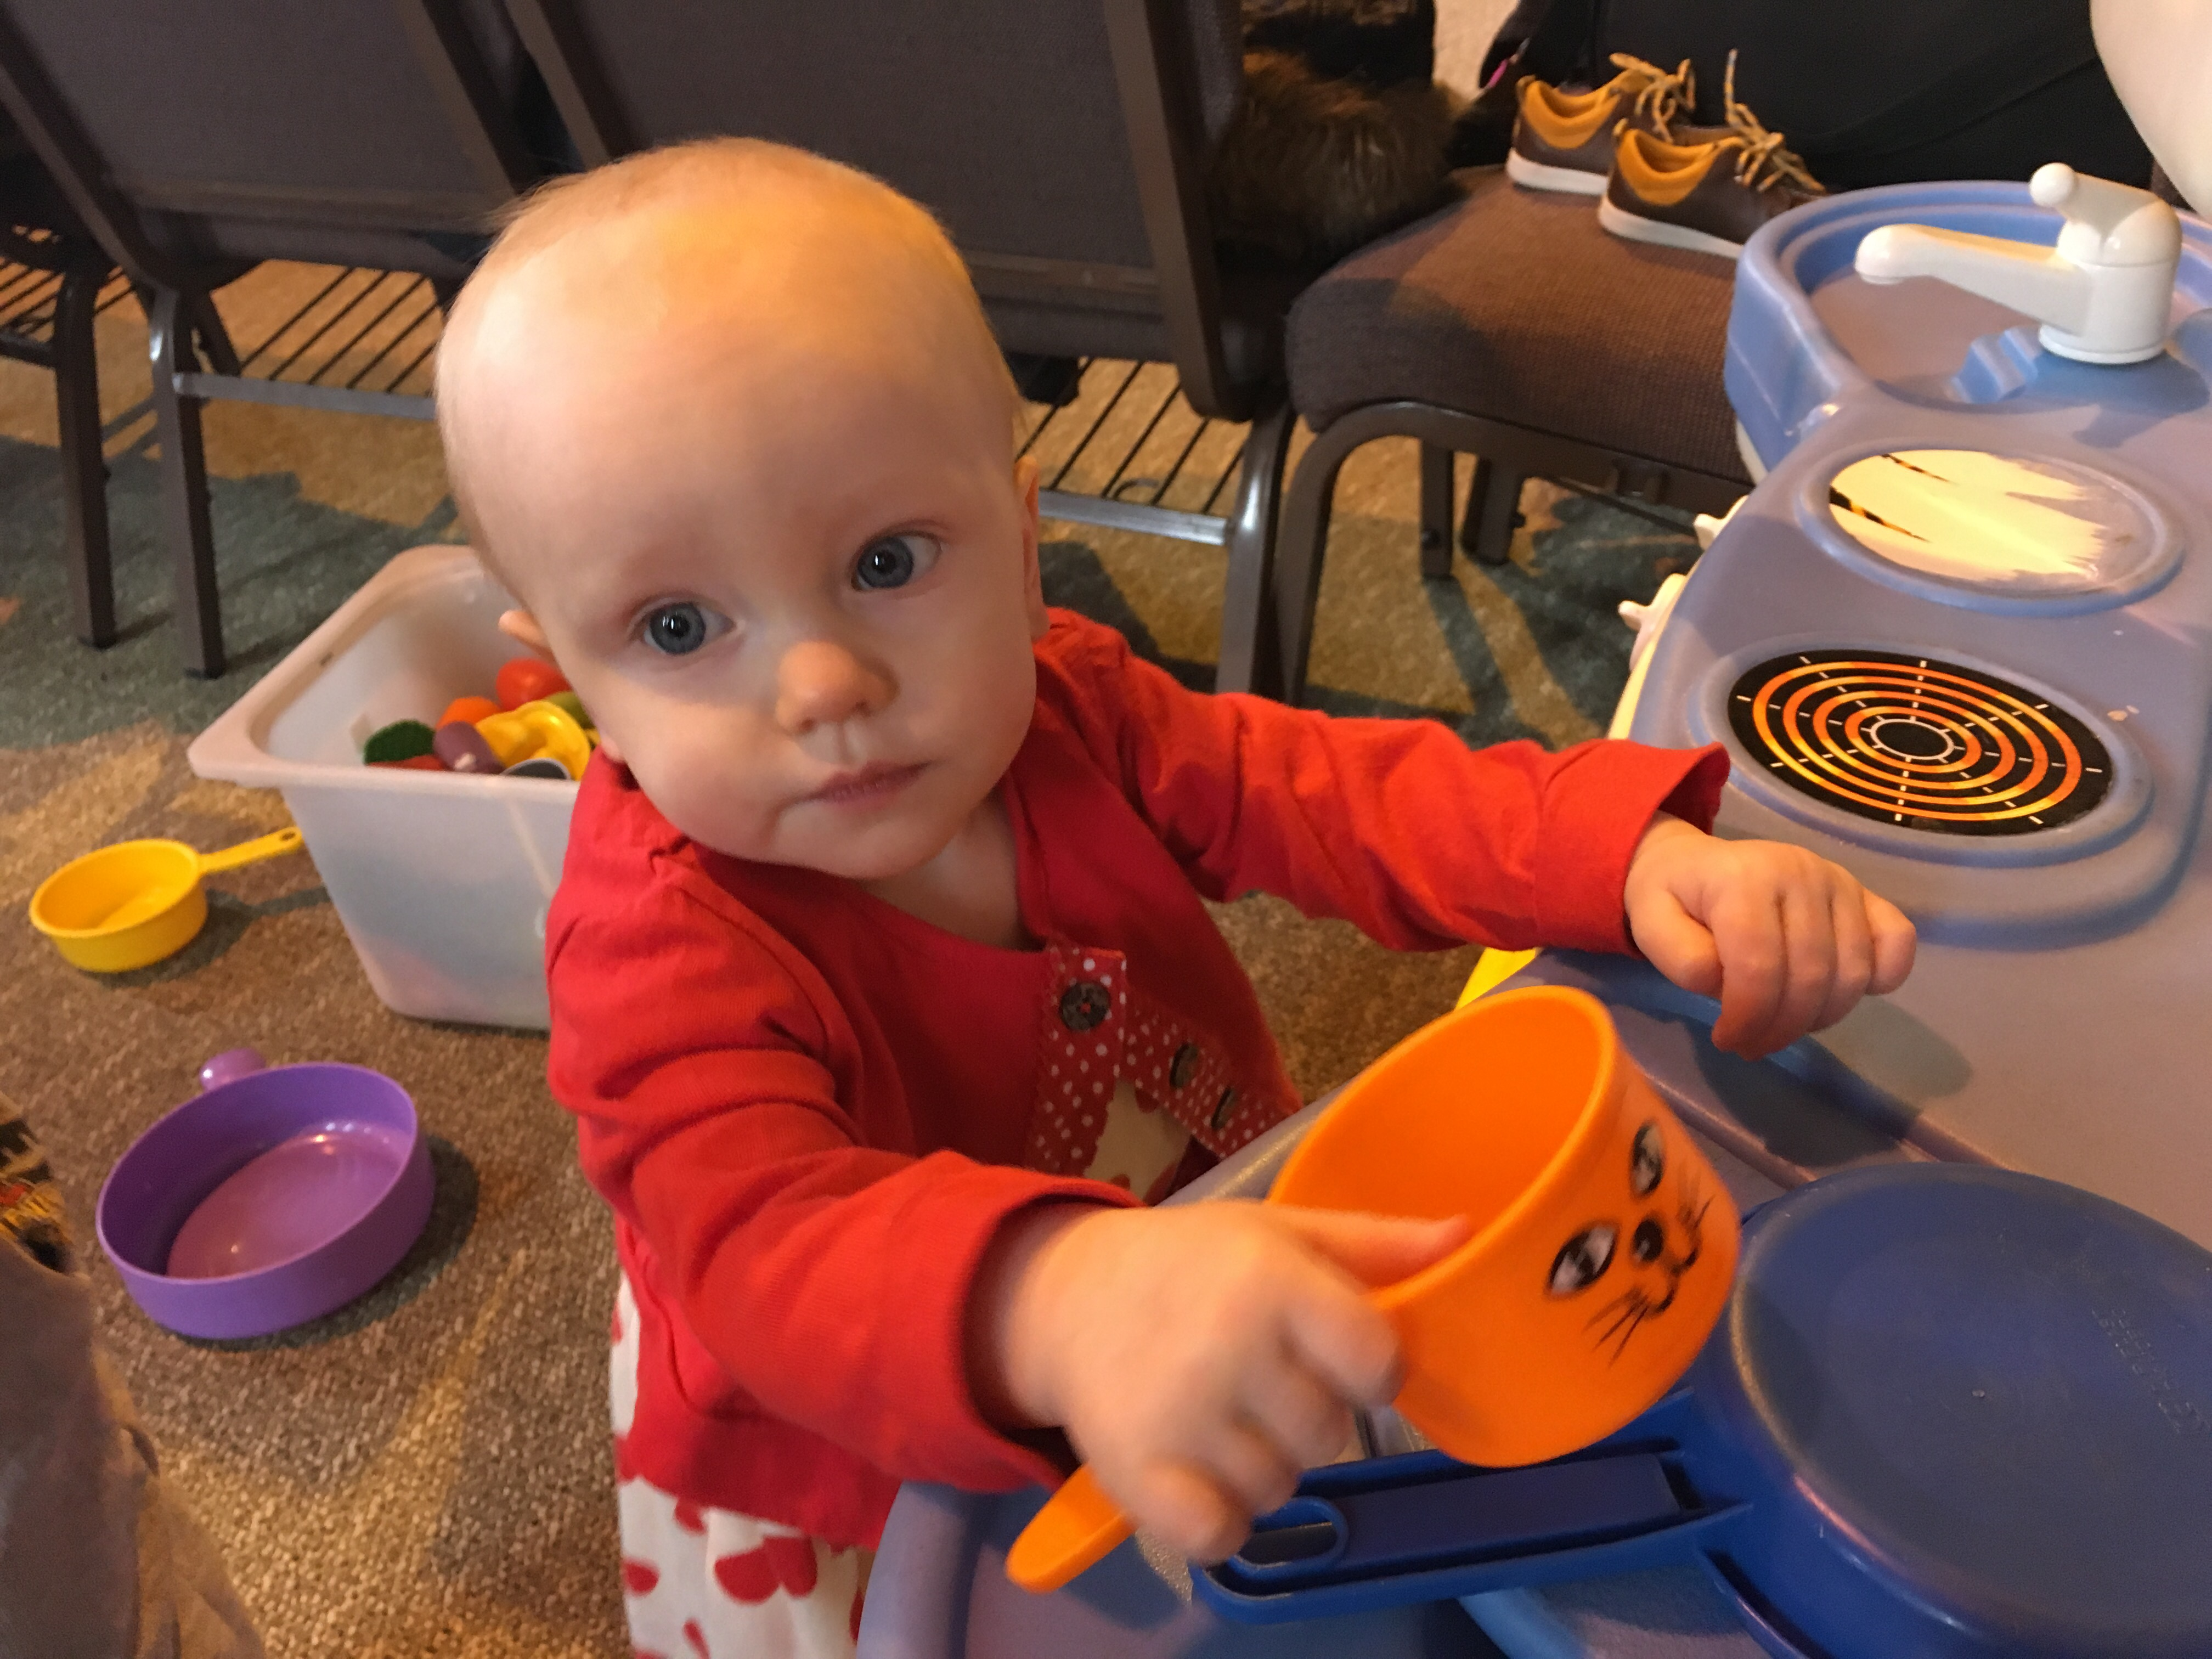 Baby Lena playing with toy kitchen